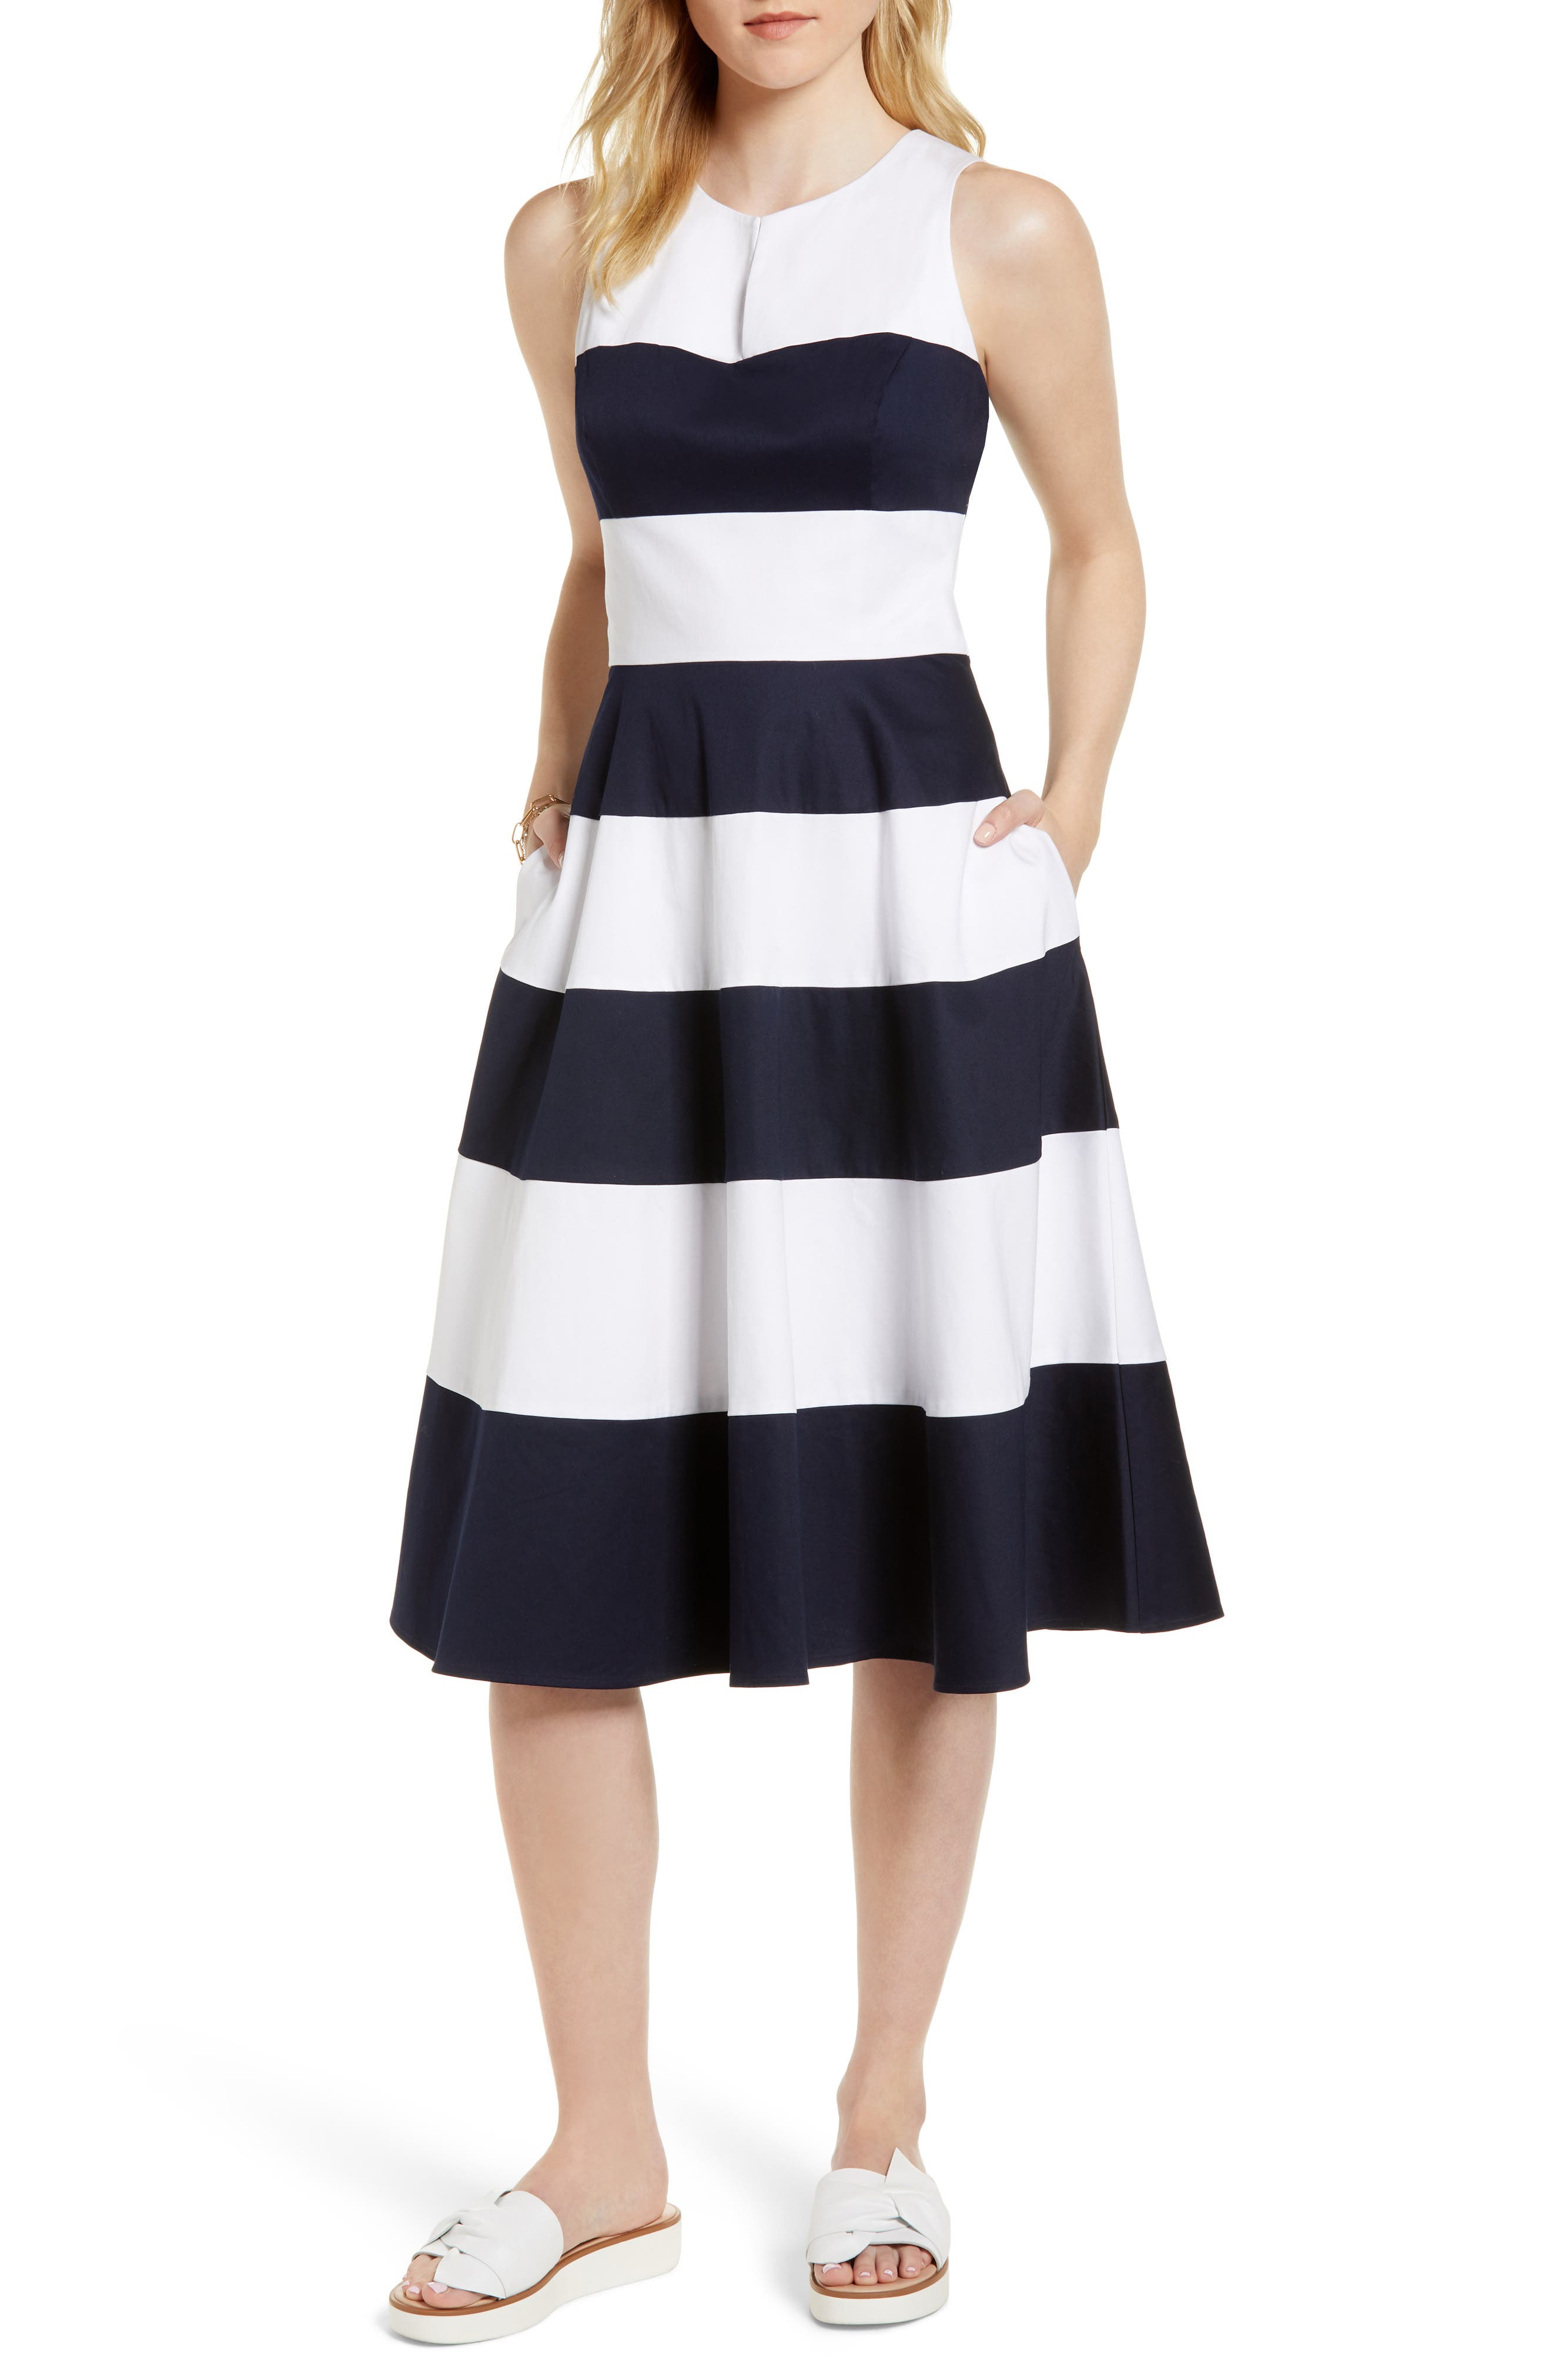 Main Image - 1901 Stripe Fit & Flare Dress